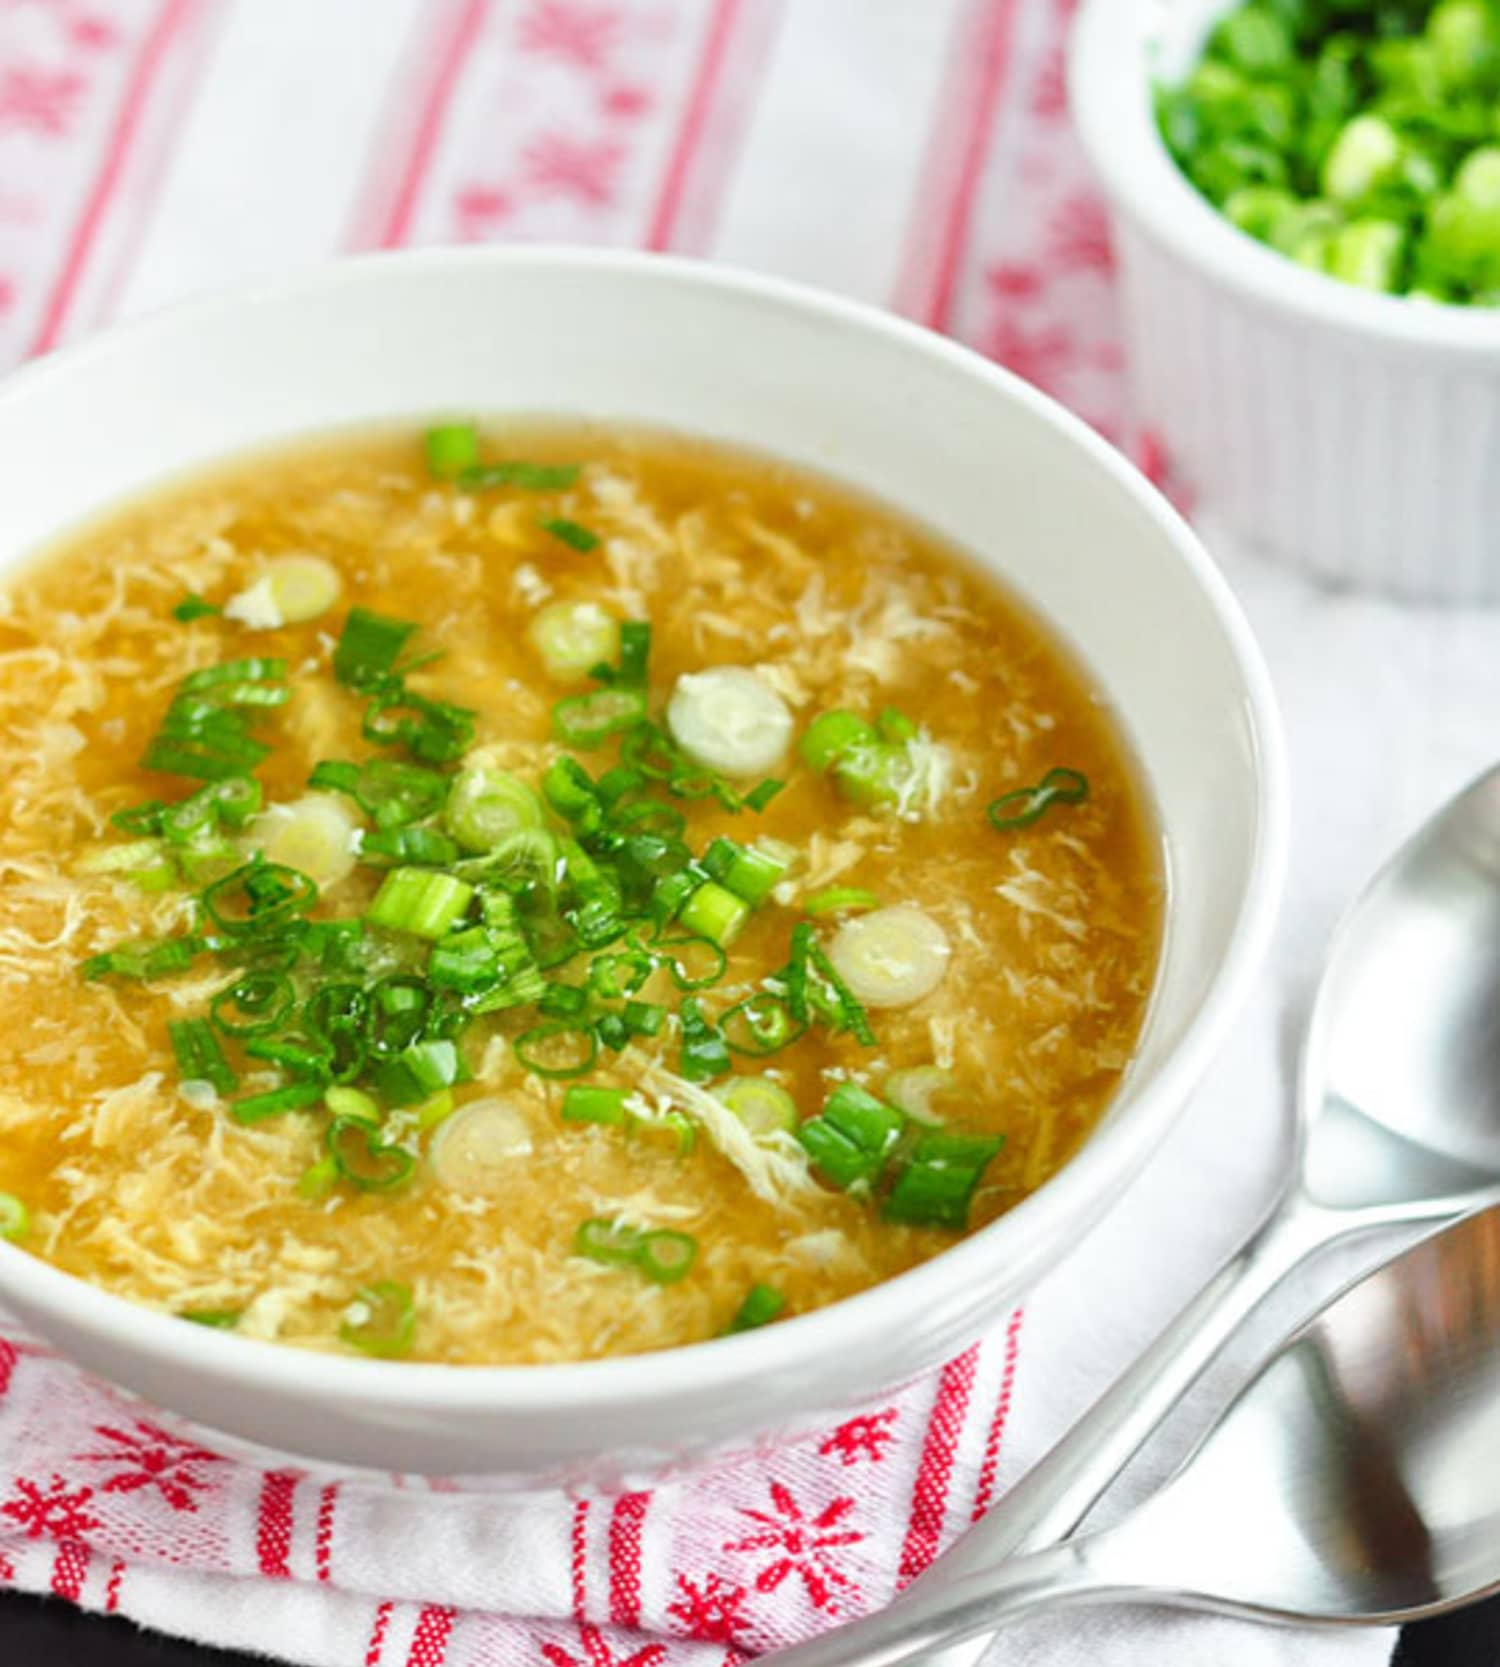 How To Make Egg Drop Soup Kitchn